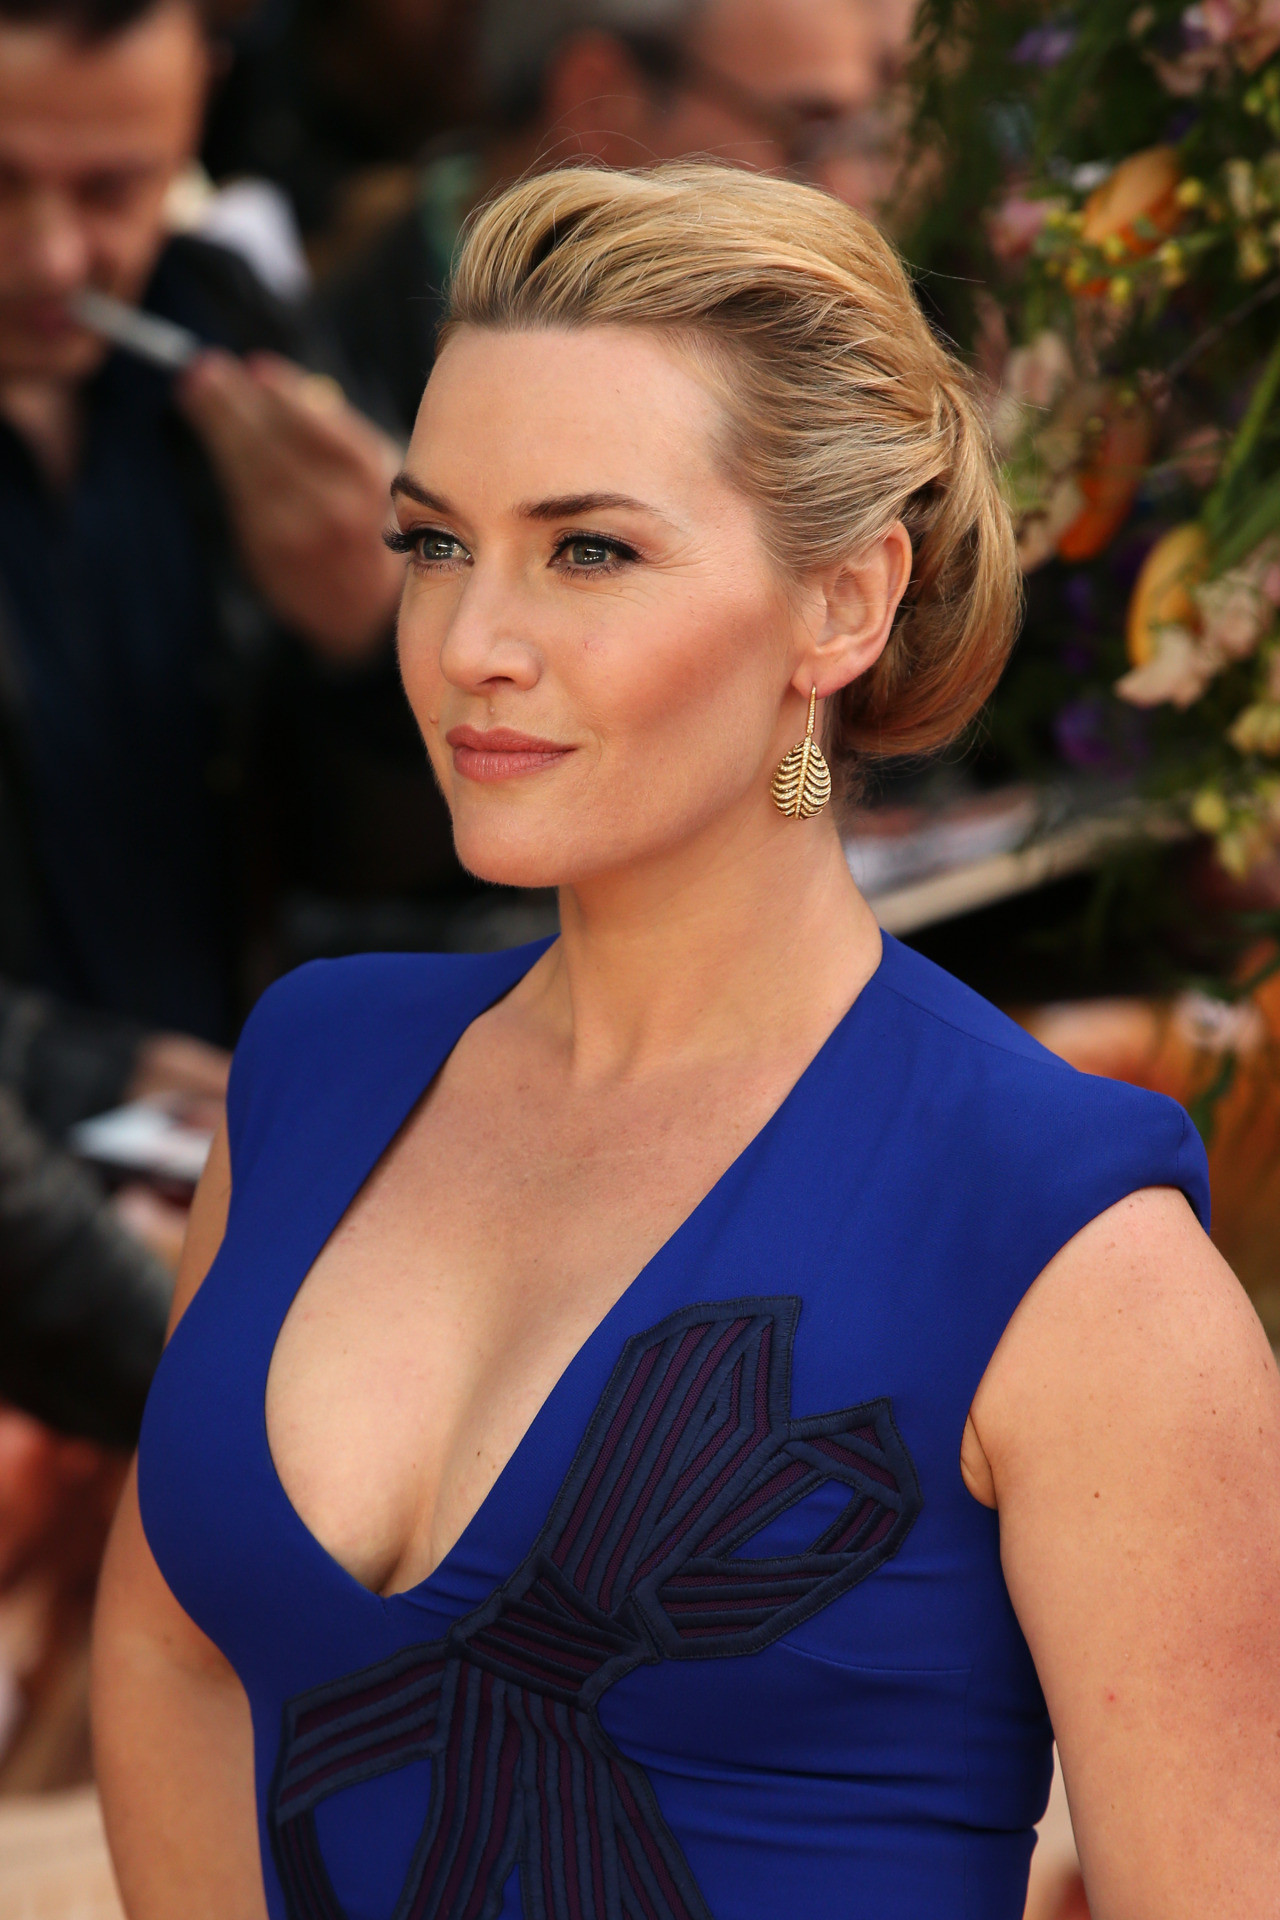 Kate Winslet lovely cleavage in a blue dress at movie premiere